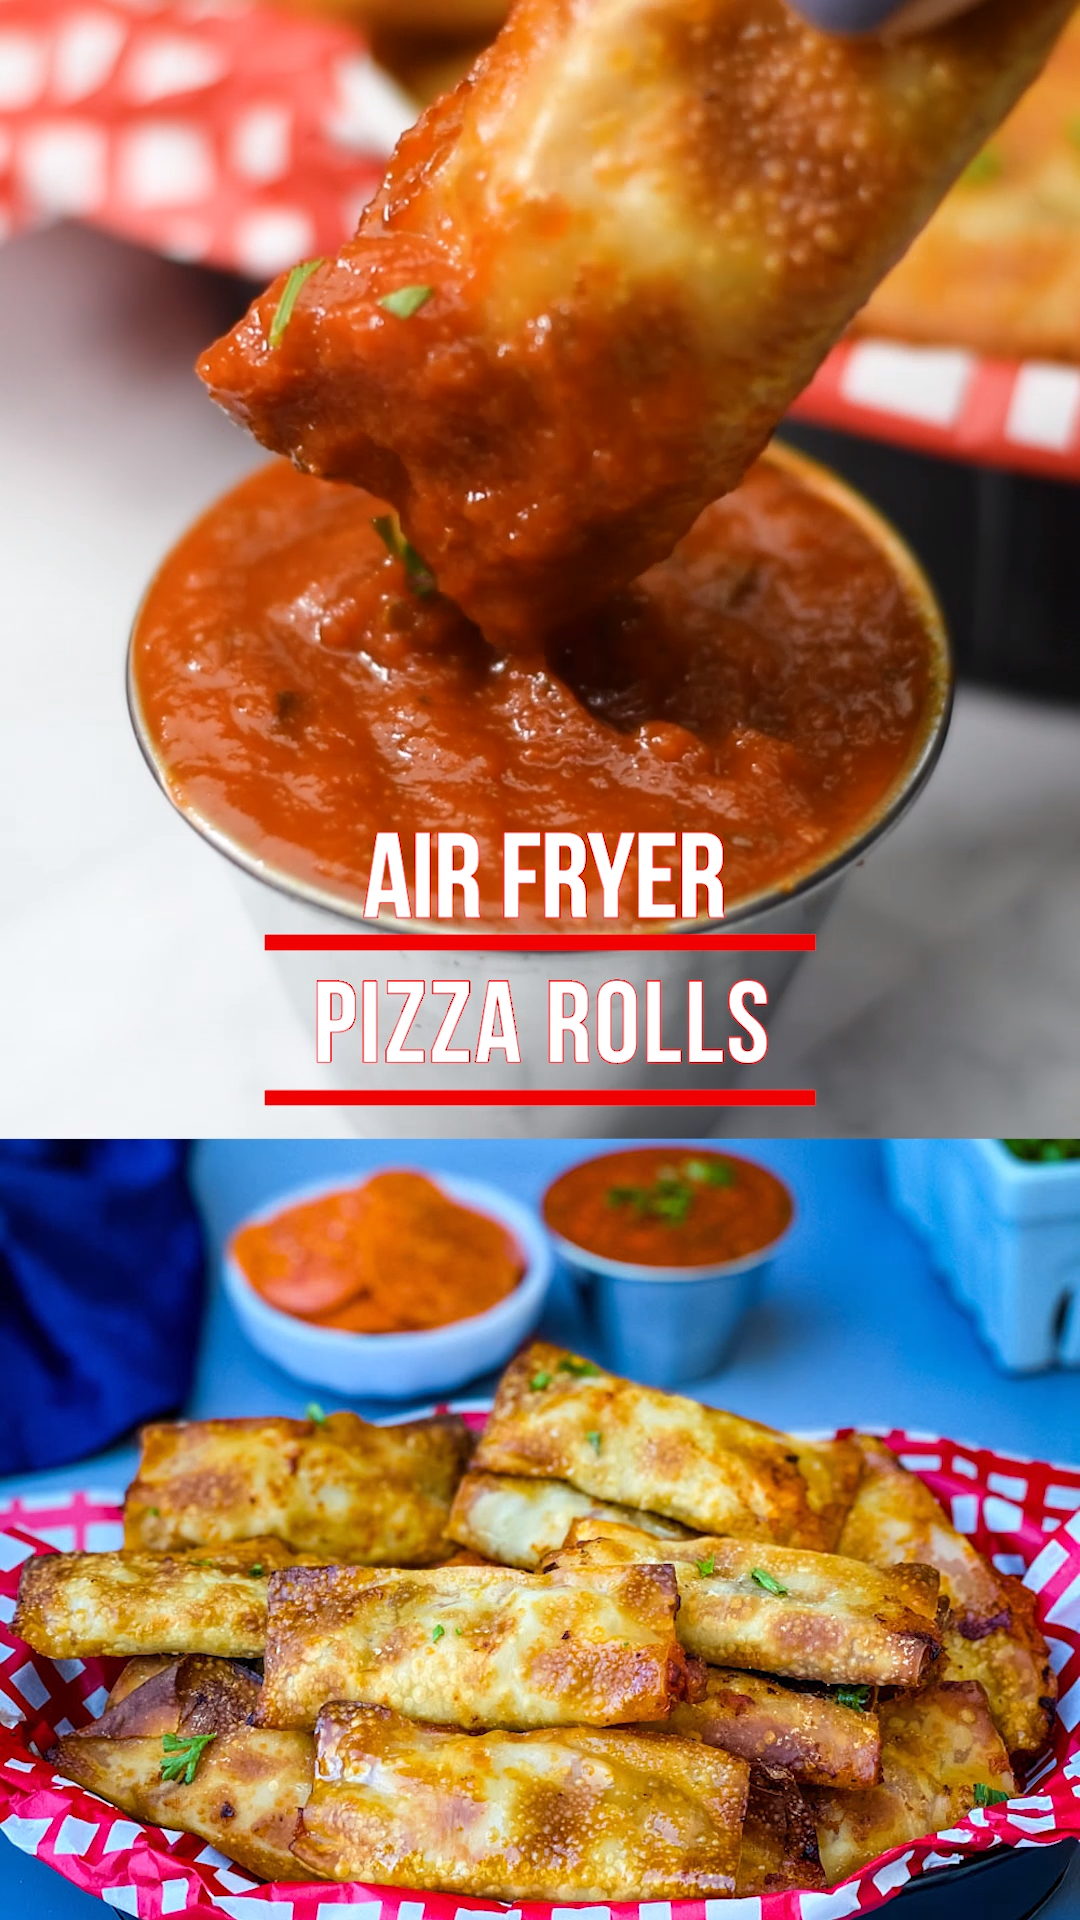 Air Fryer Pizza Rolls,Air Fryer Pizza Rolls is a quick and